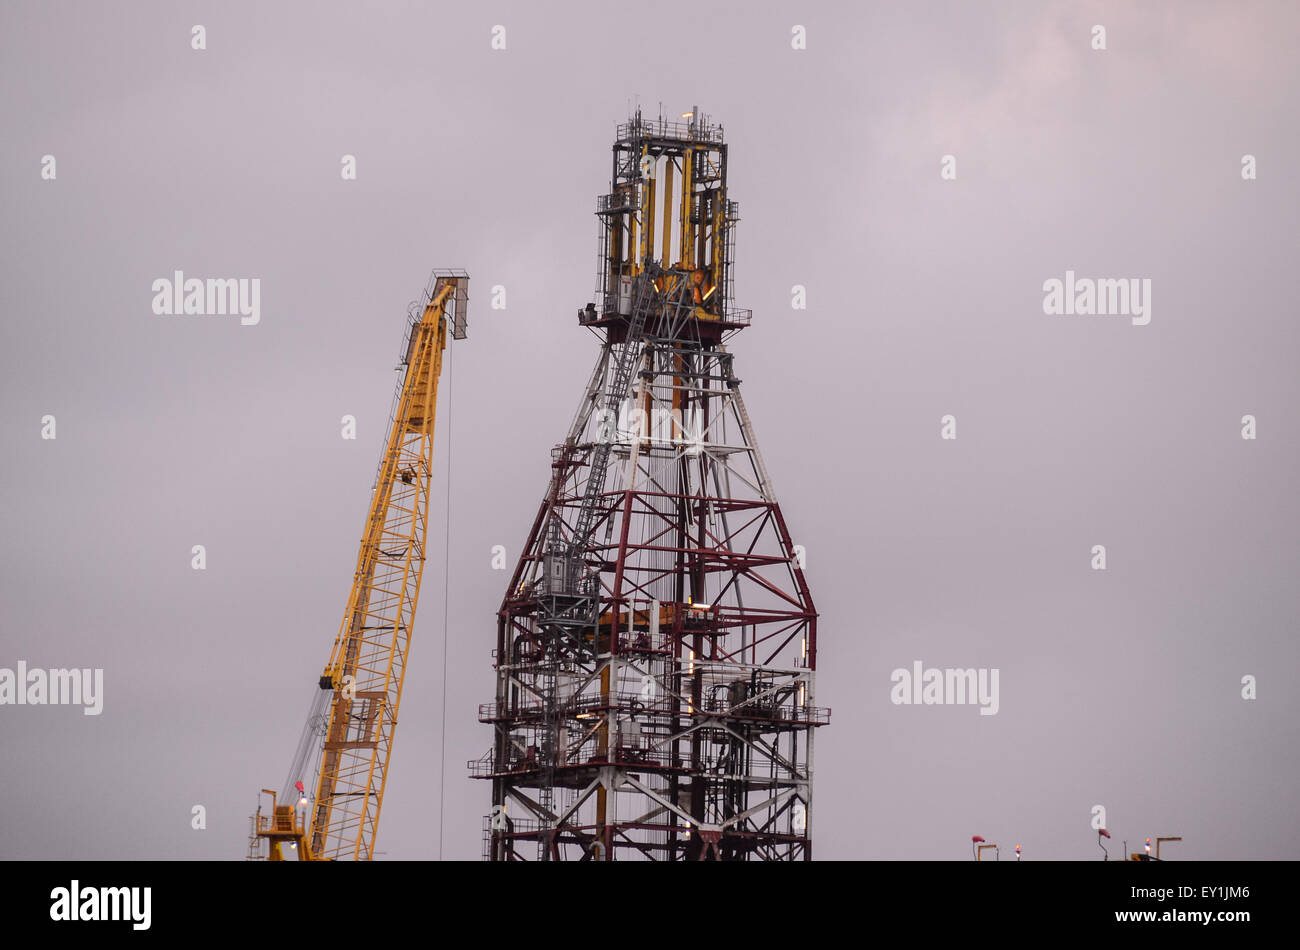 Oil Drilling Rig Silhouette Stock Photo: 85473814 - Alamy